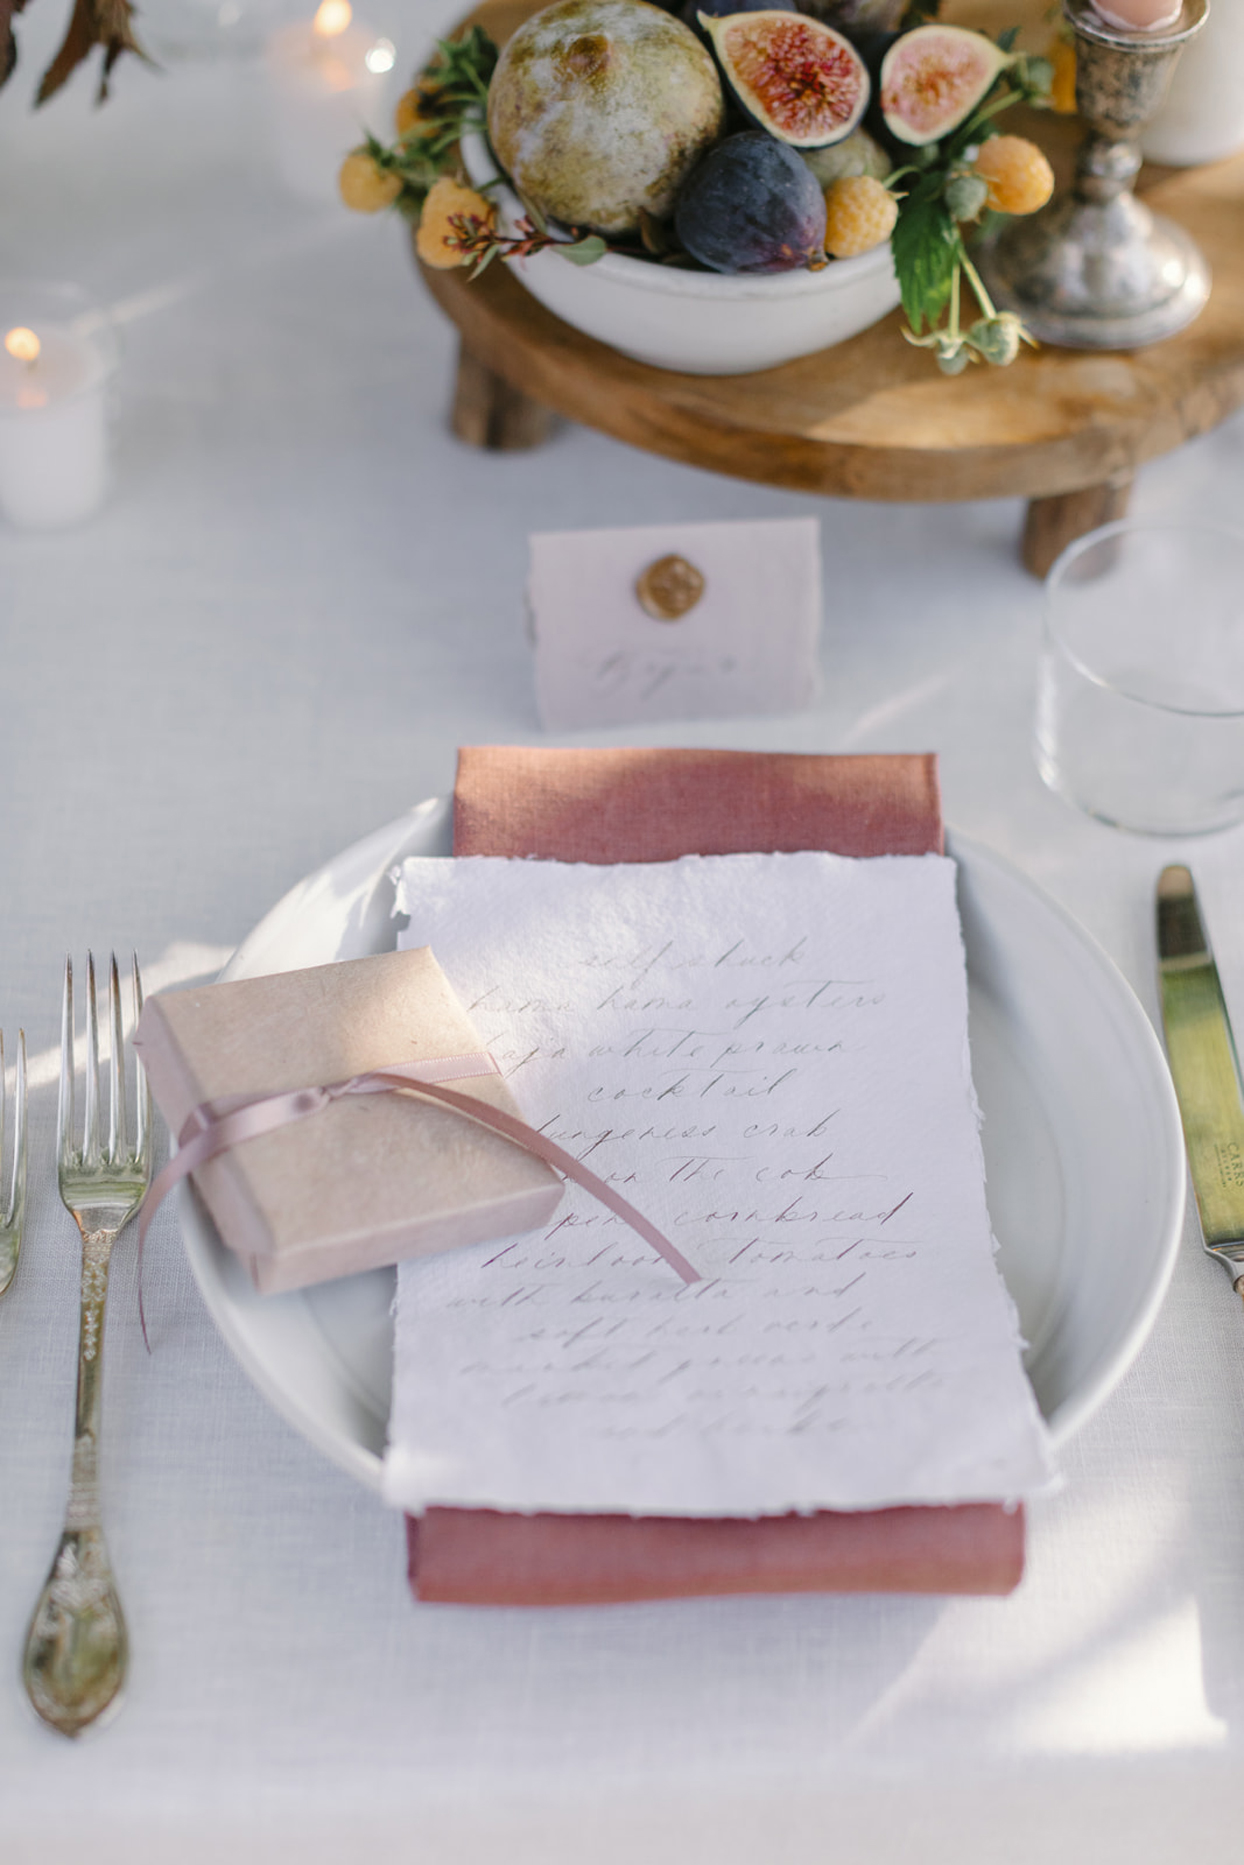 place card and dinner menu